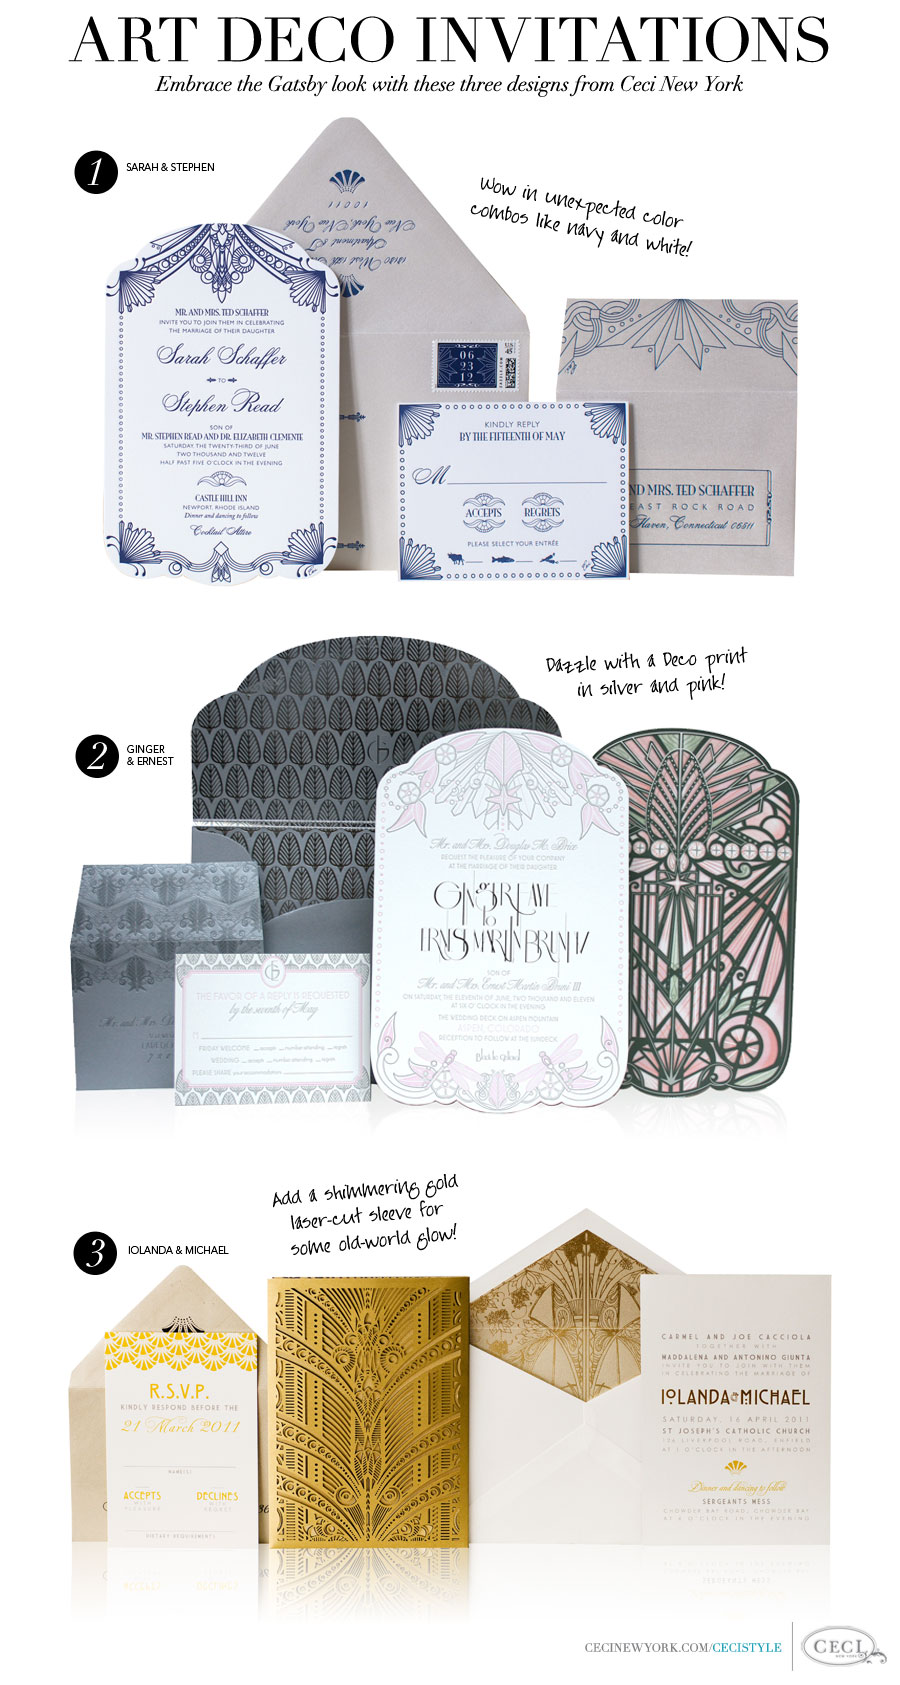 Art Deco Invitations - Embrace the Gatsby look with these three designs from Ceci New York